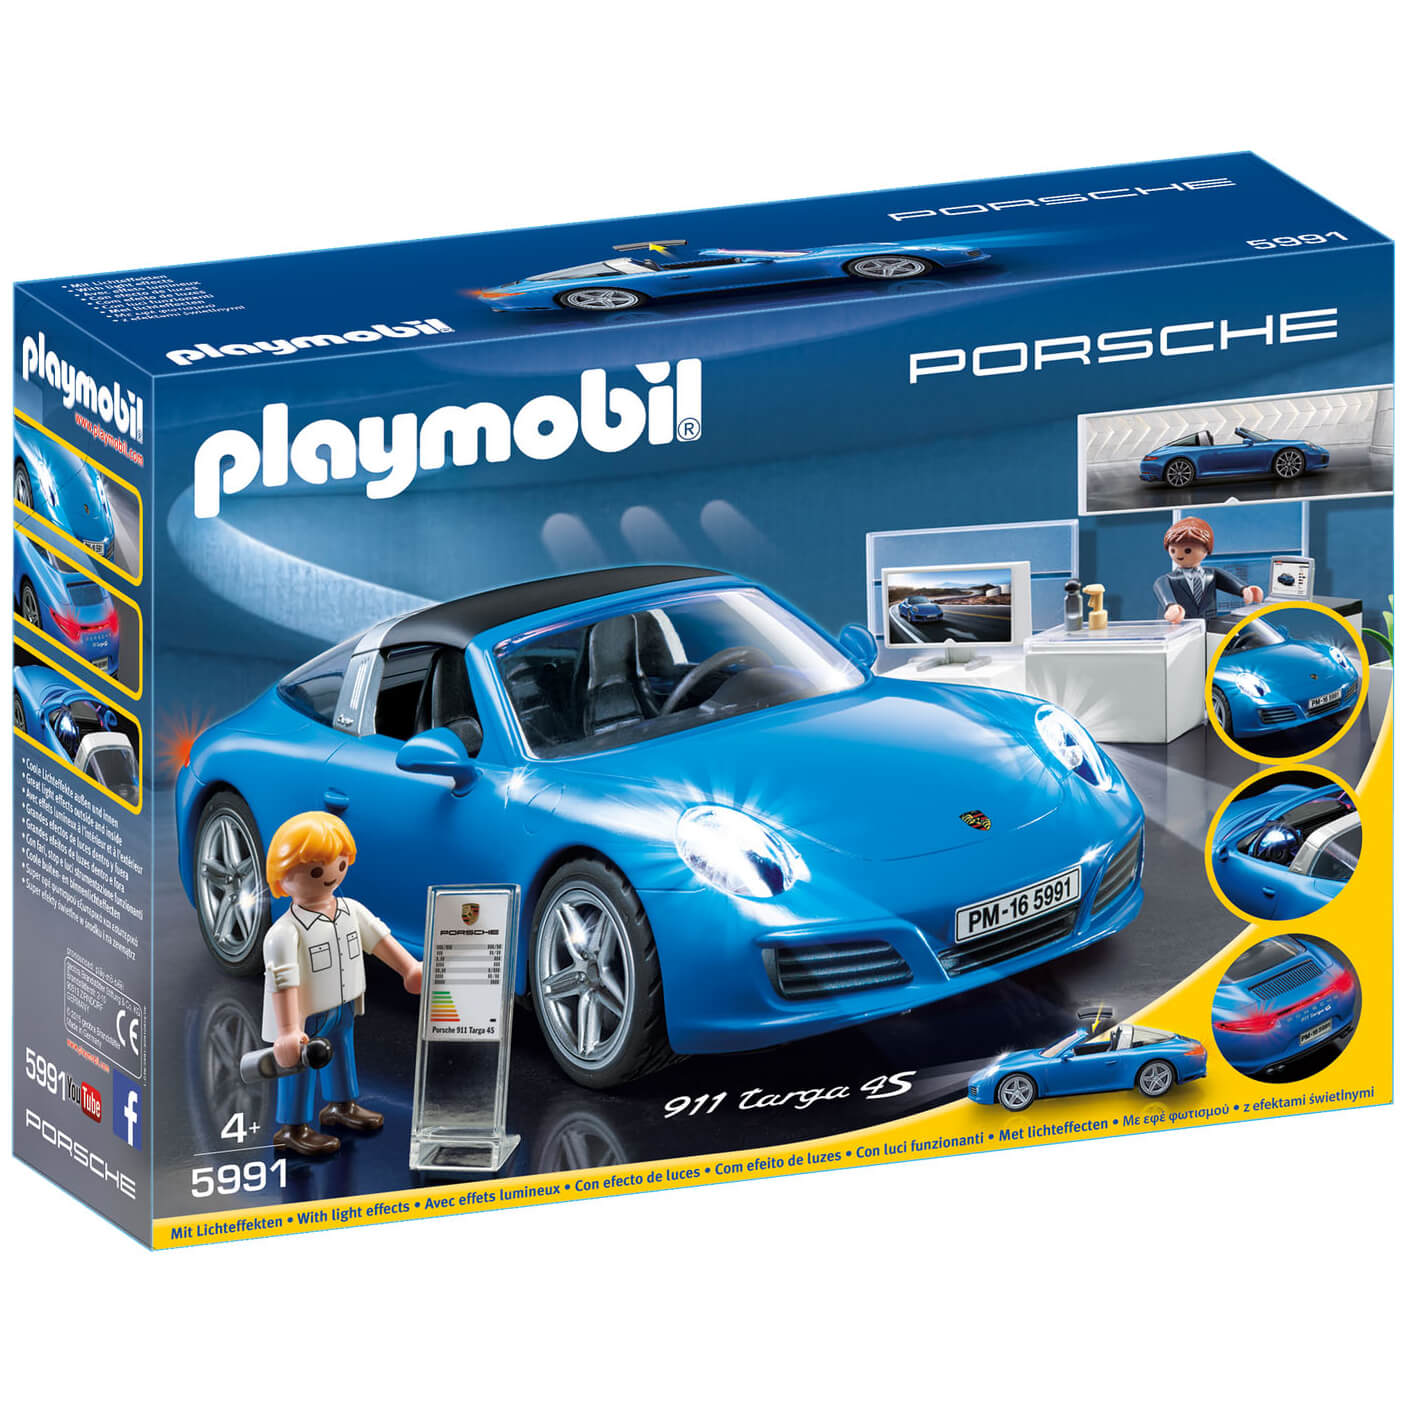 Playmobil Porsche 911 Targa 4s With Lights And Showroom